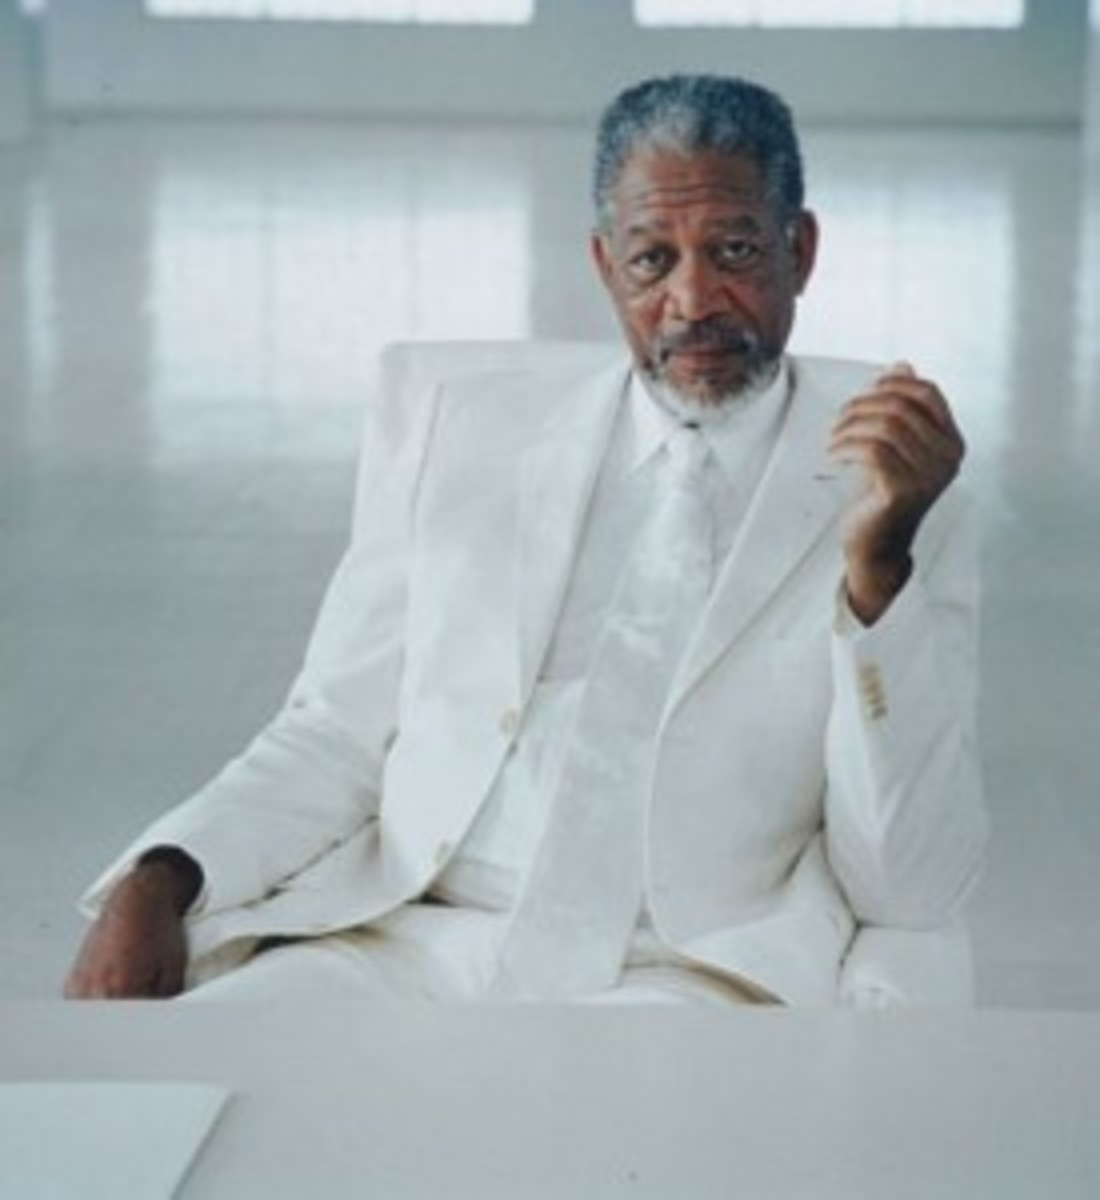 Morgan Freeman puts the Almighty in Bruce Almighty.